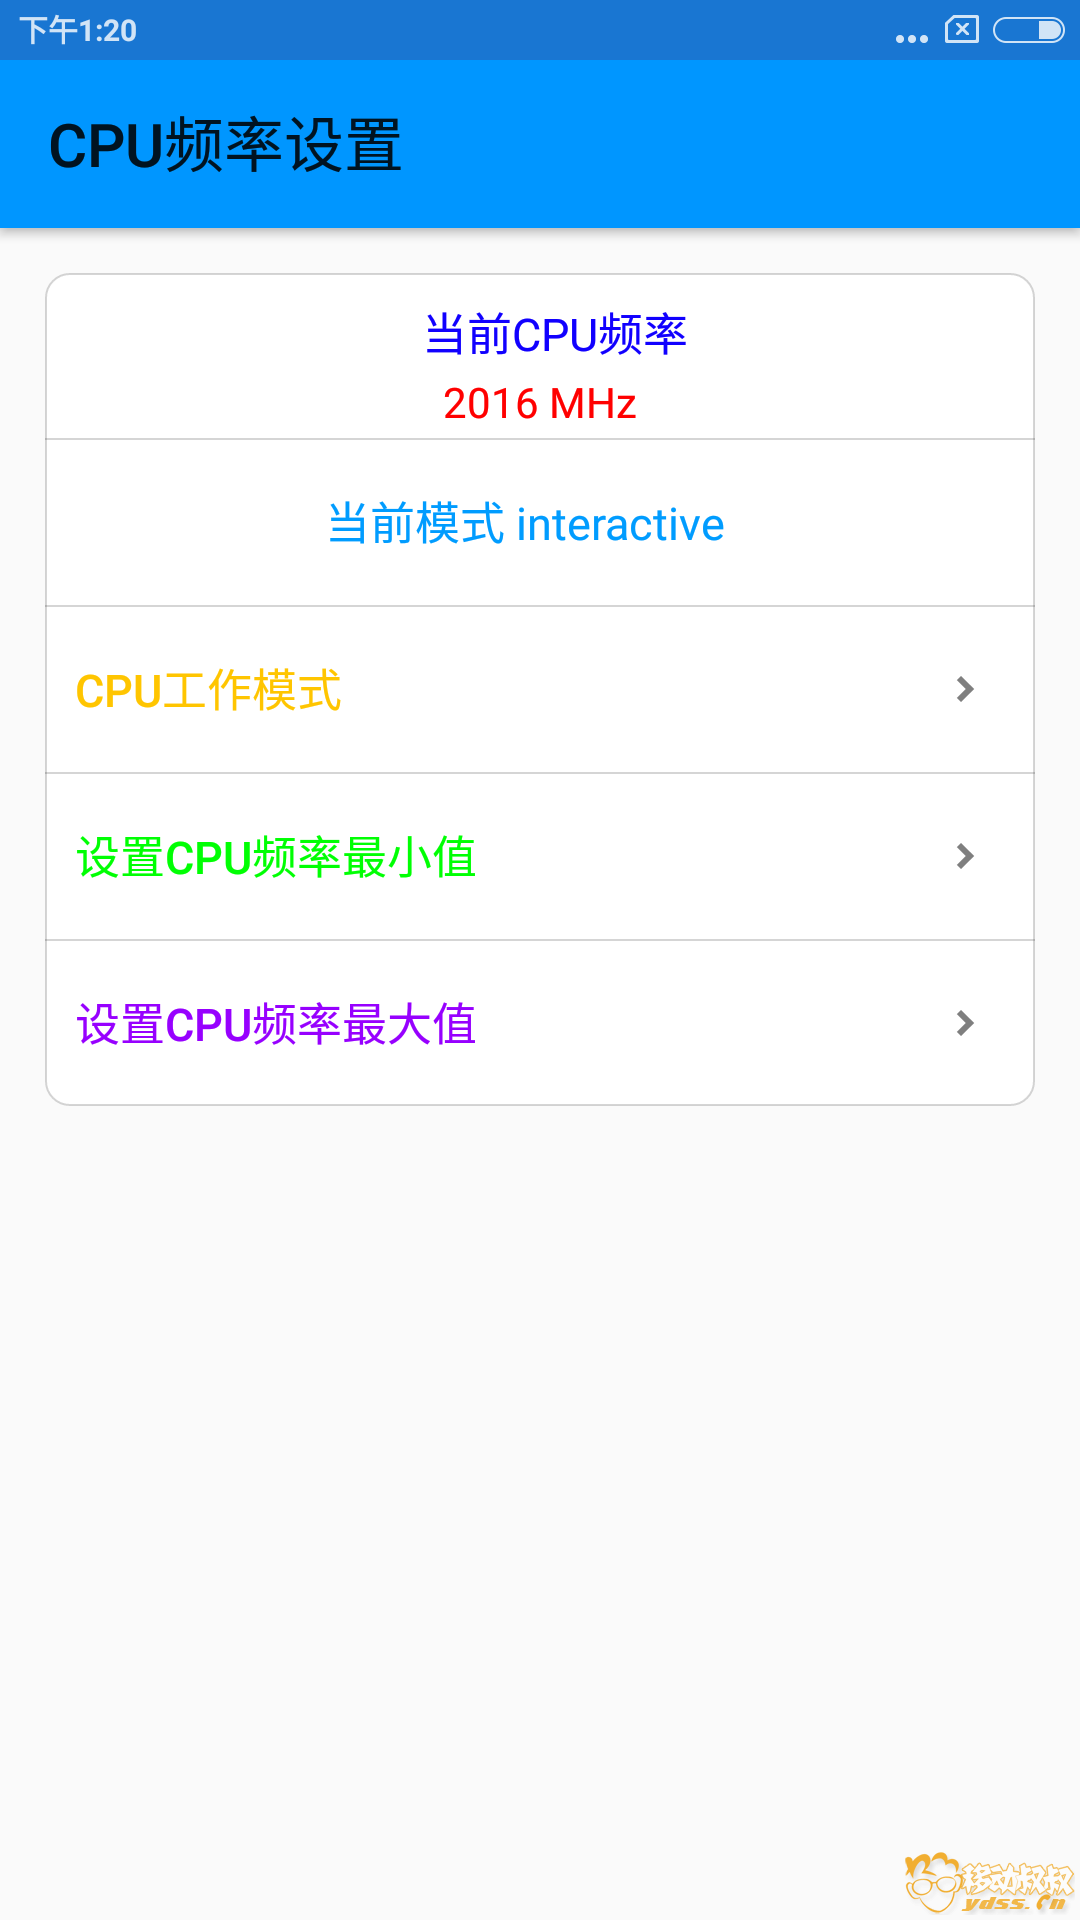 Screenshot_2017-12-20-13-20-36-429_com.zhanhong.tools.png